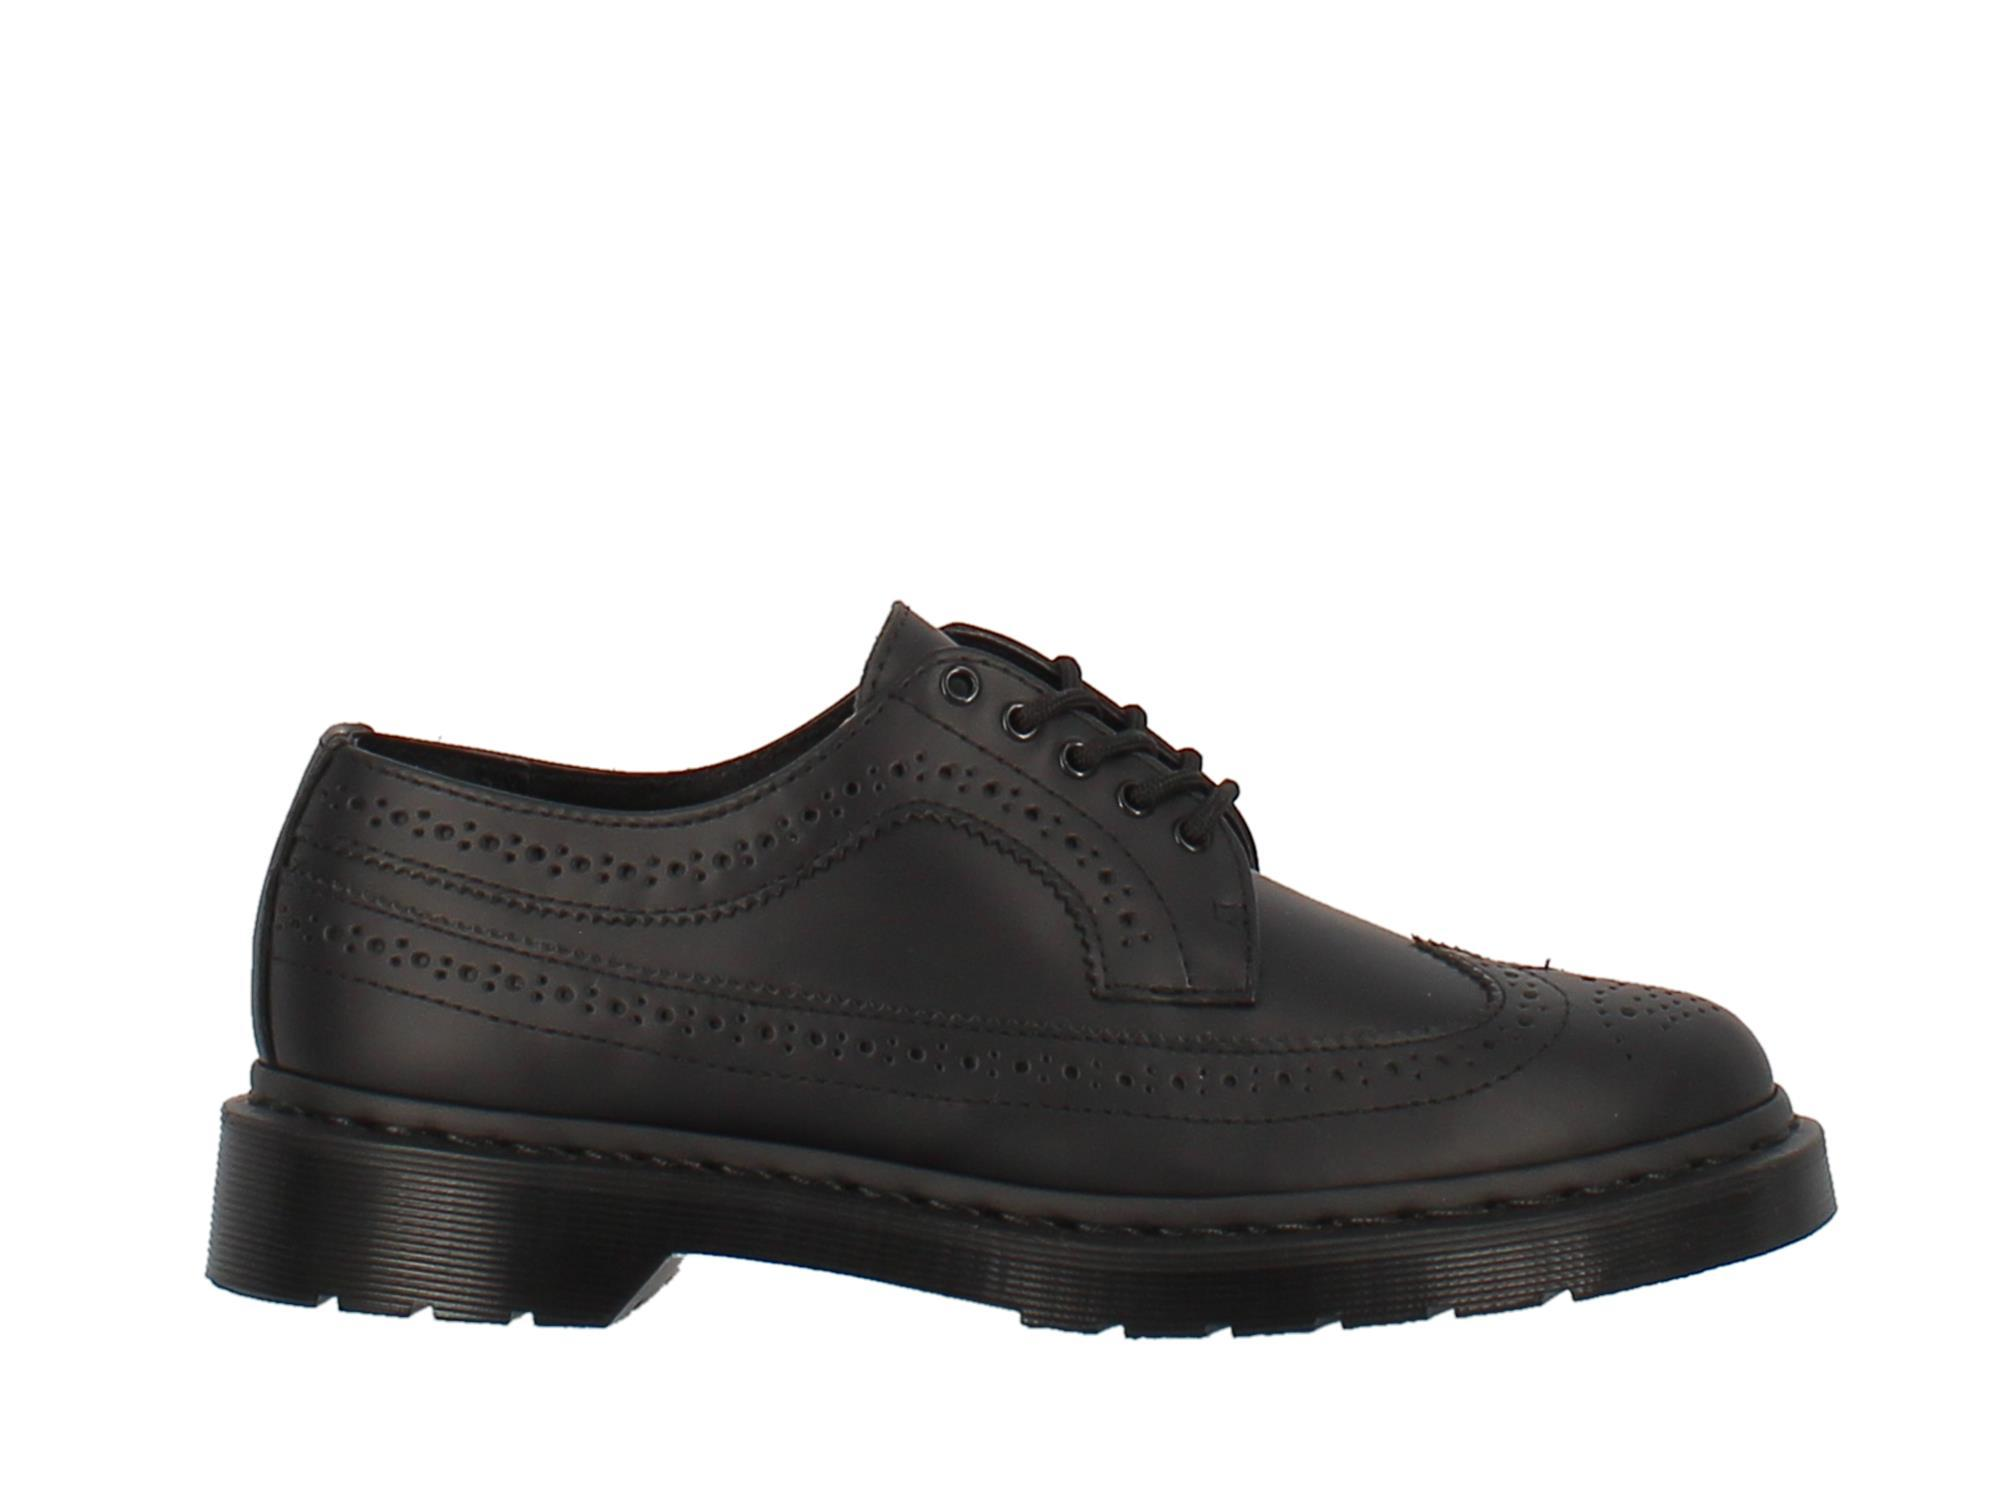 DR MARTENS SMOOTH 3989